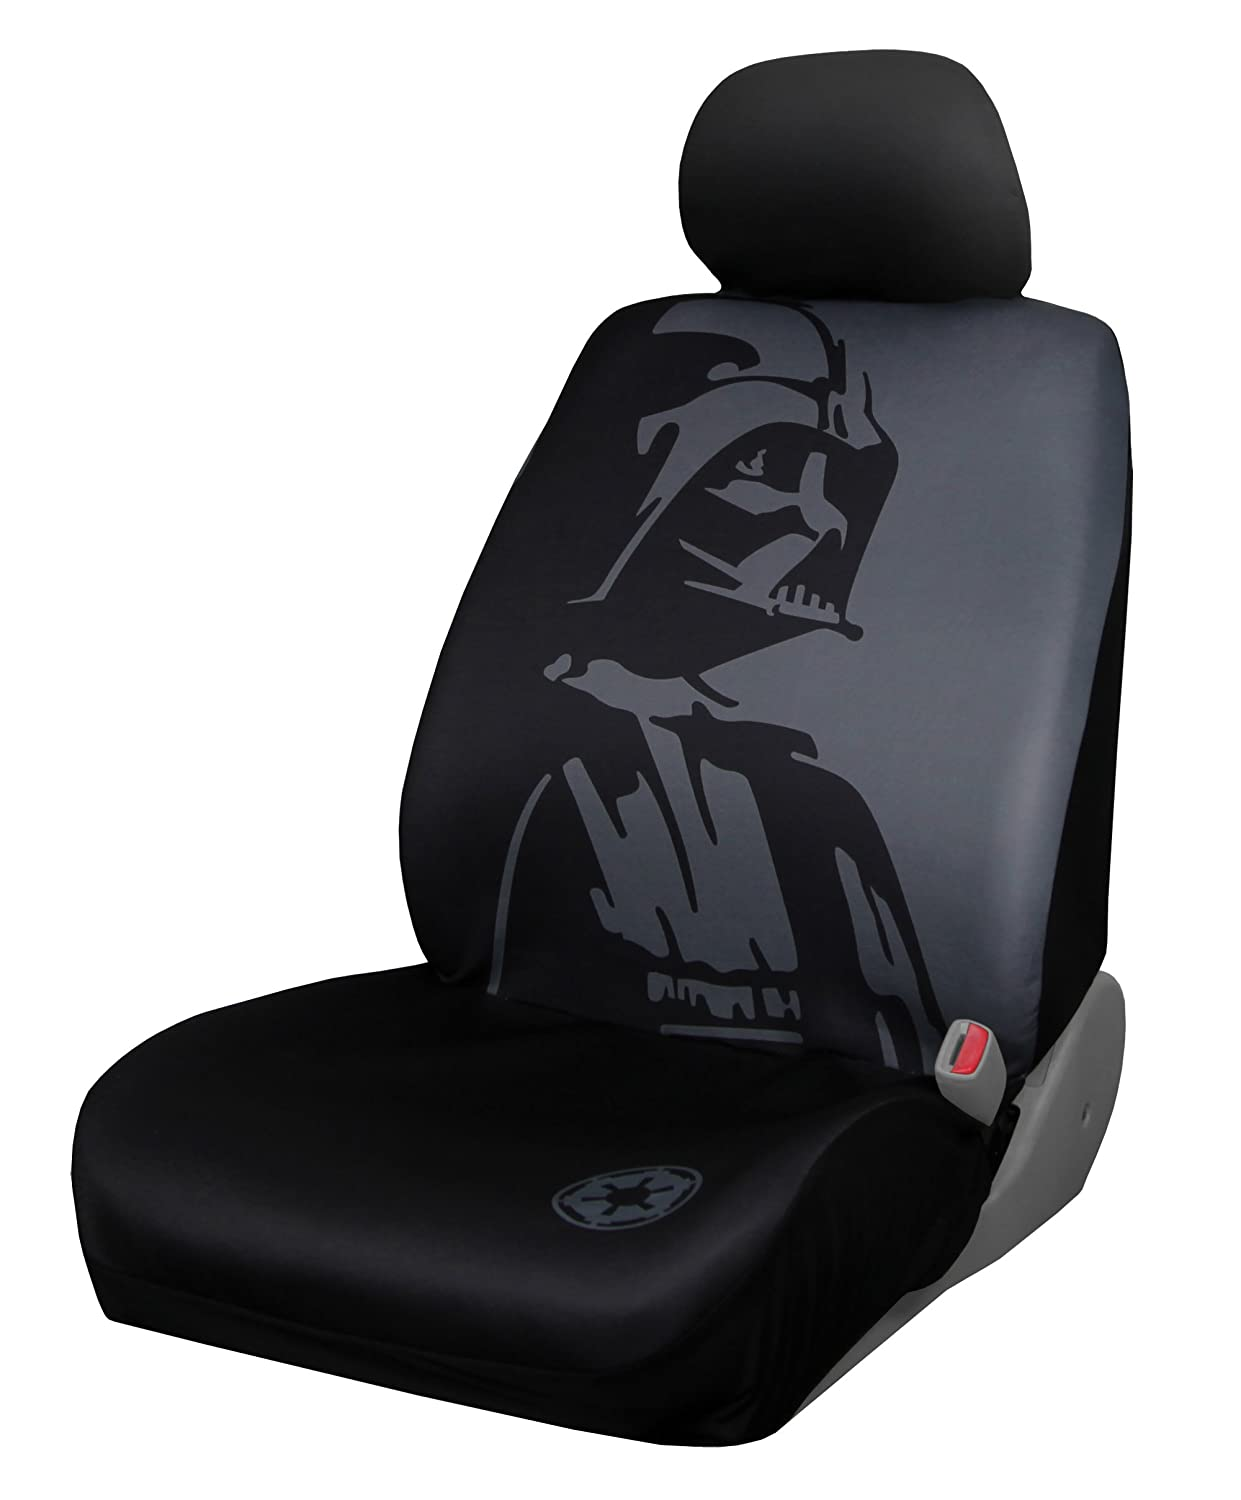 Plasticolor 006922R01 Star Wars Darth Vader Low Back Seat Cover